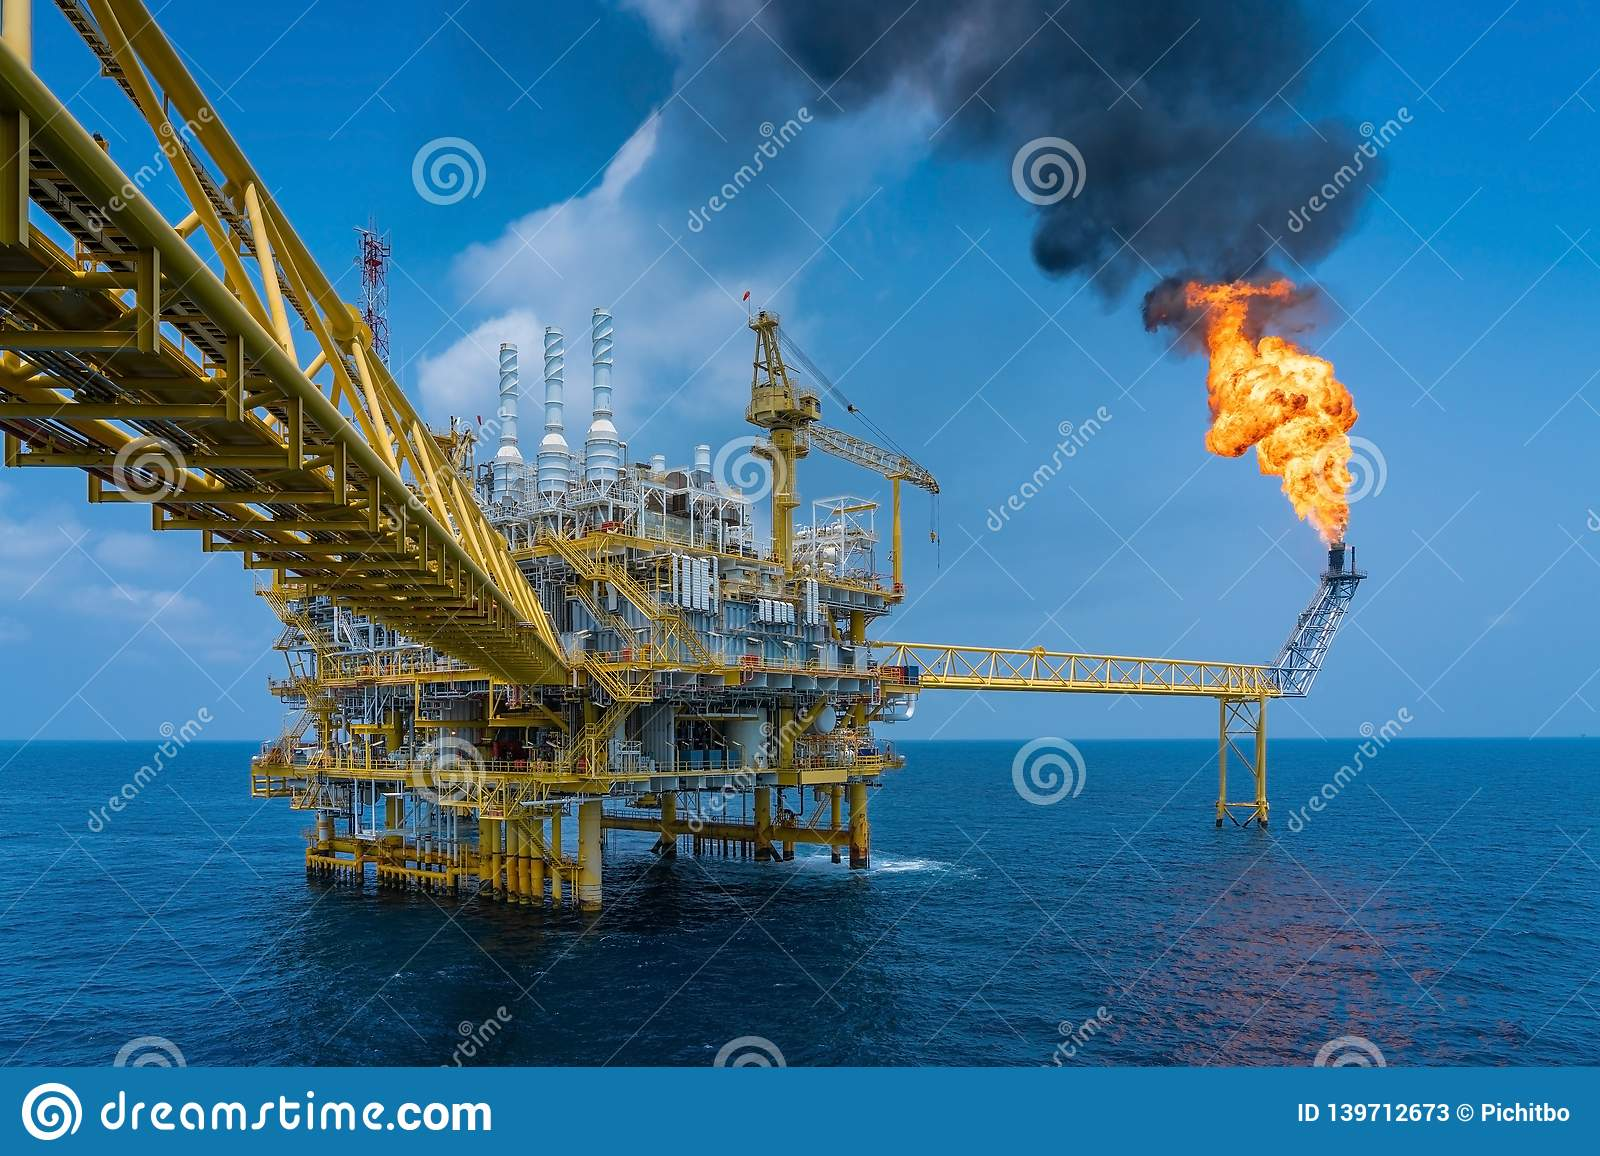 Offshore oil and gas construction platform while vent gases to flare platform to prevent over pressure from process upset.